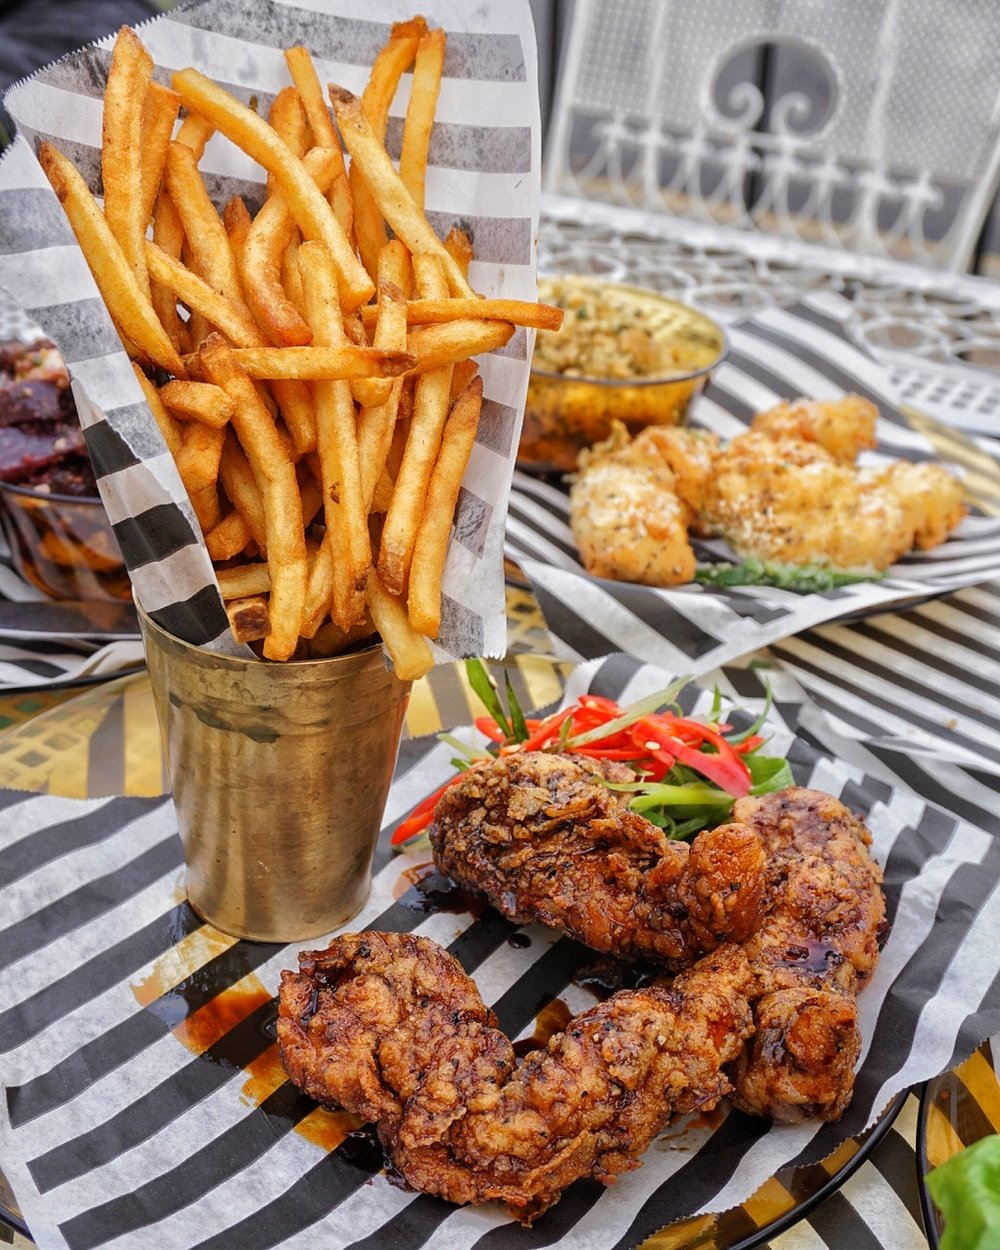 Chicken tenders with side of twice-fried fries